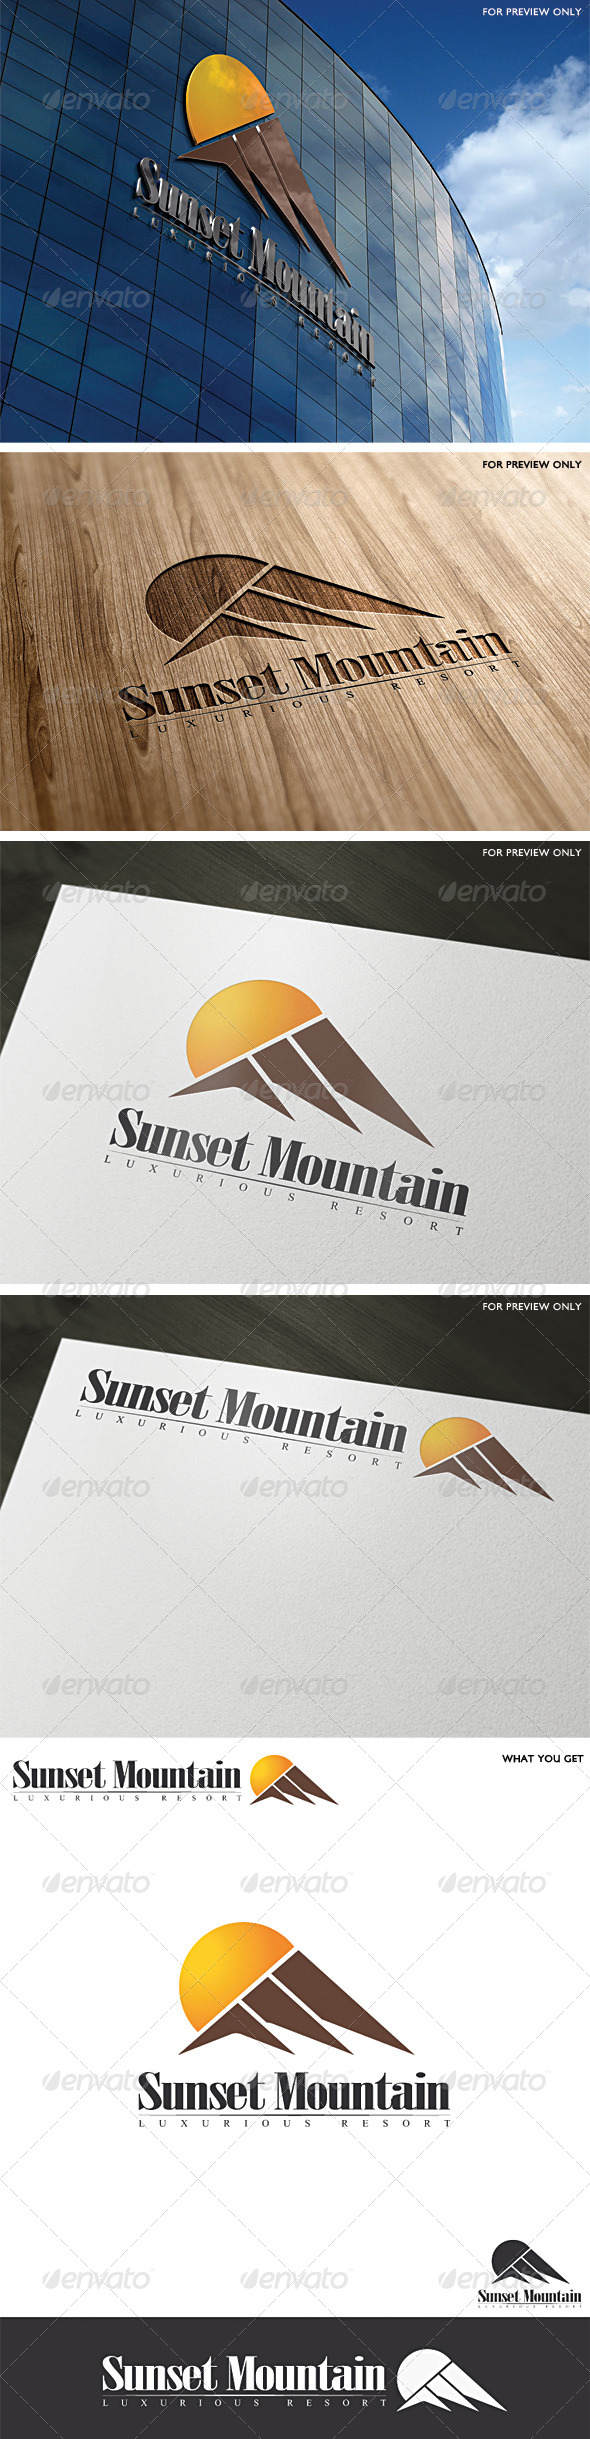 Sunset Mountain Resort Logo Template - Abstract Logo Templates